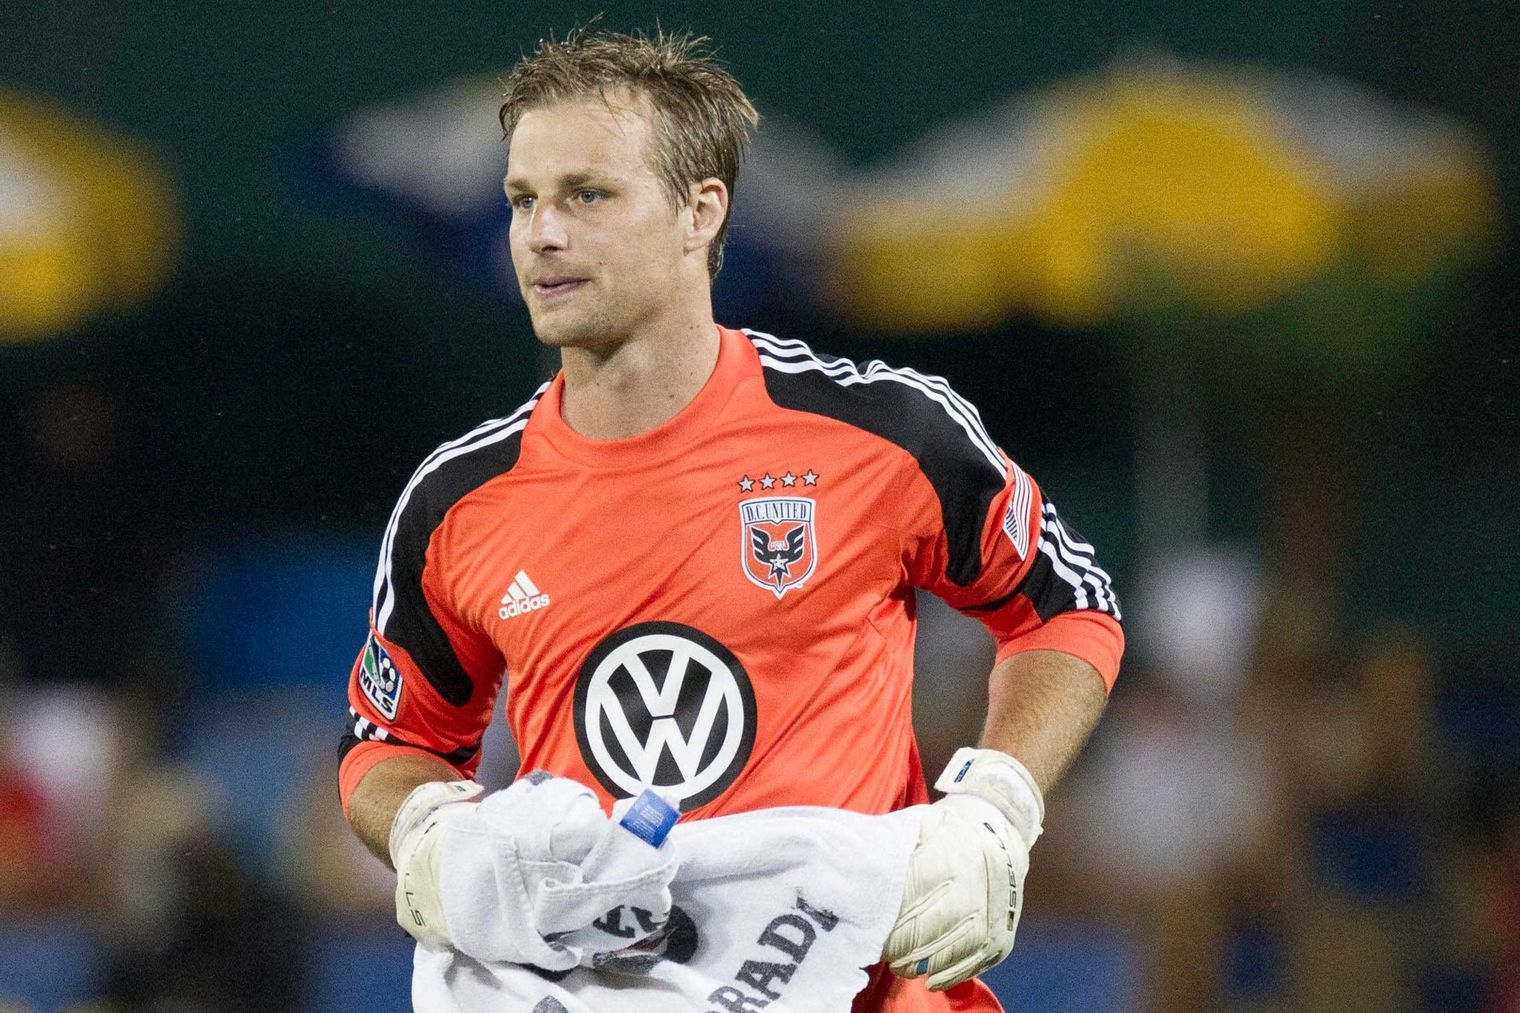 Dykstra earned 14 starts with DC United from 2012-2016. (Photo belongs to USA TODAY Sports)